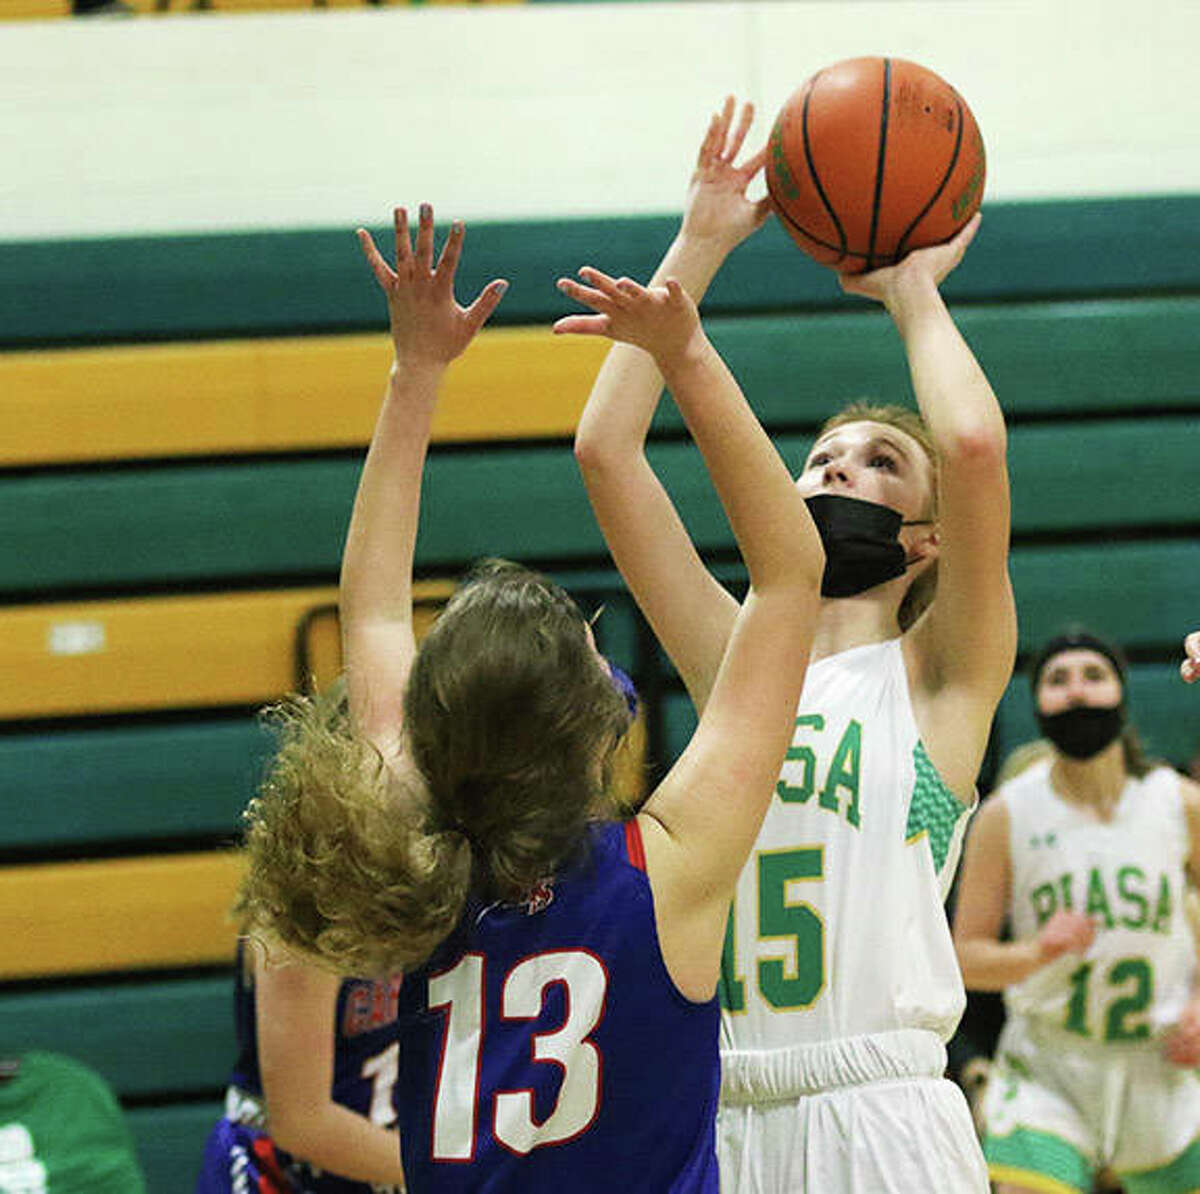 Southwestern's Hannah Nixon, shown shooting over Carlinville's Melanie Murphy (13) in a SCC game earlier this season in Piasa, scored eight points Friday night in the Birds' win at North Greene in White Hall. Nixon will be the lone returning starter back from a Southwestern team that finished 12-1 with a SCC championship in 2021.